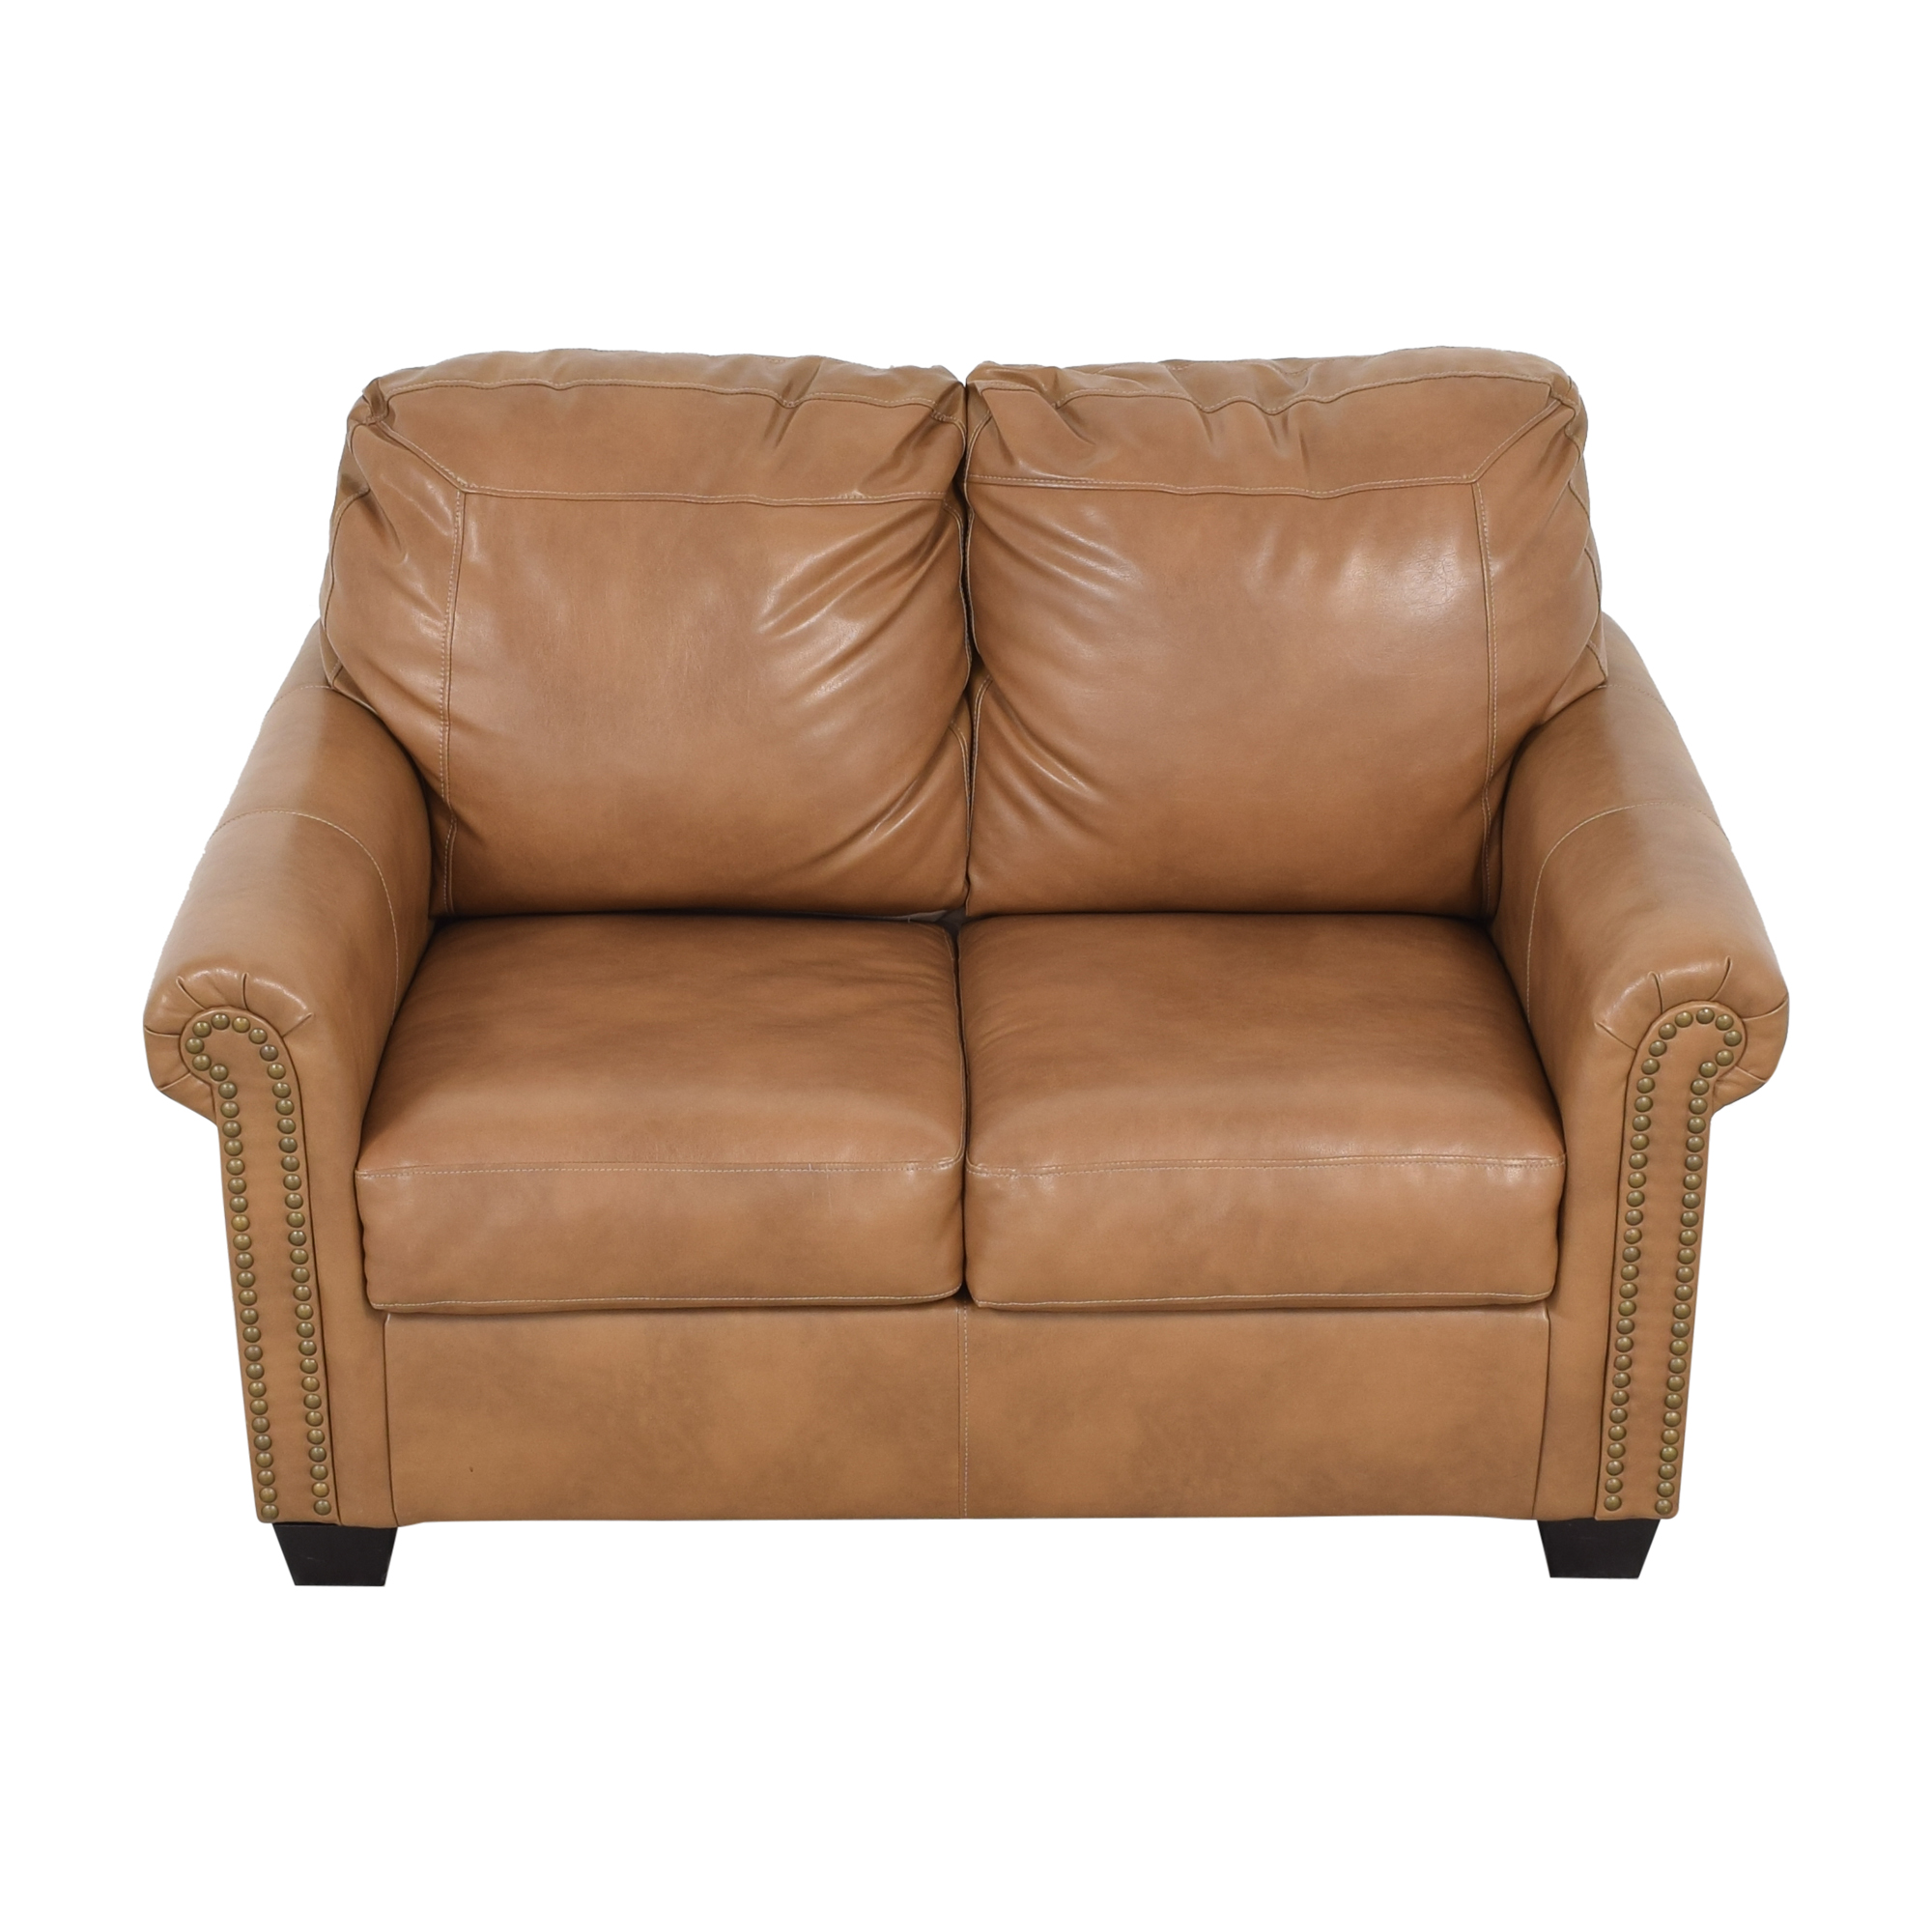 shop Overstock Caramel Leather Twin Pull Out Sofa Overstock Sofas